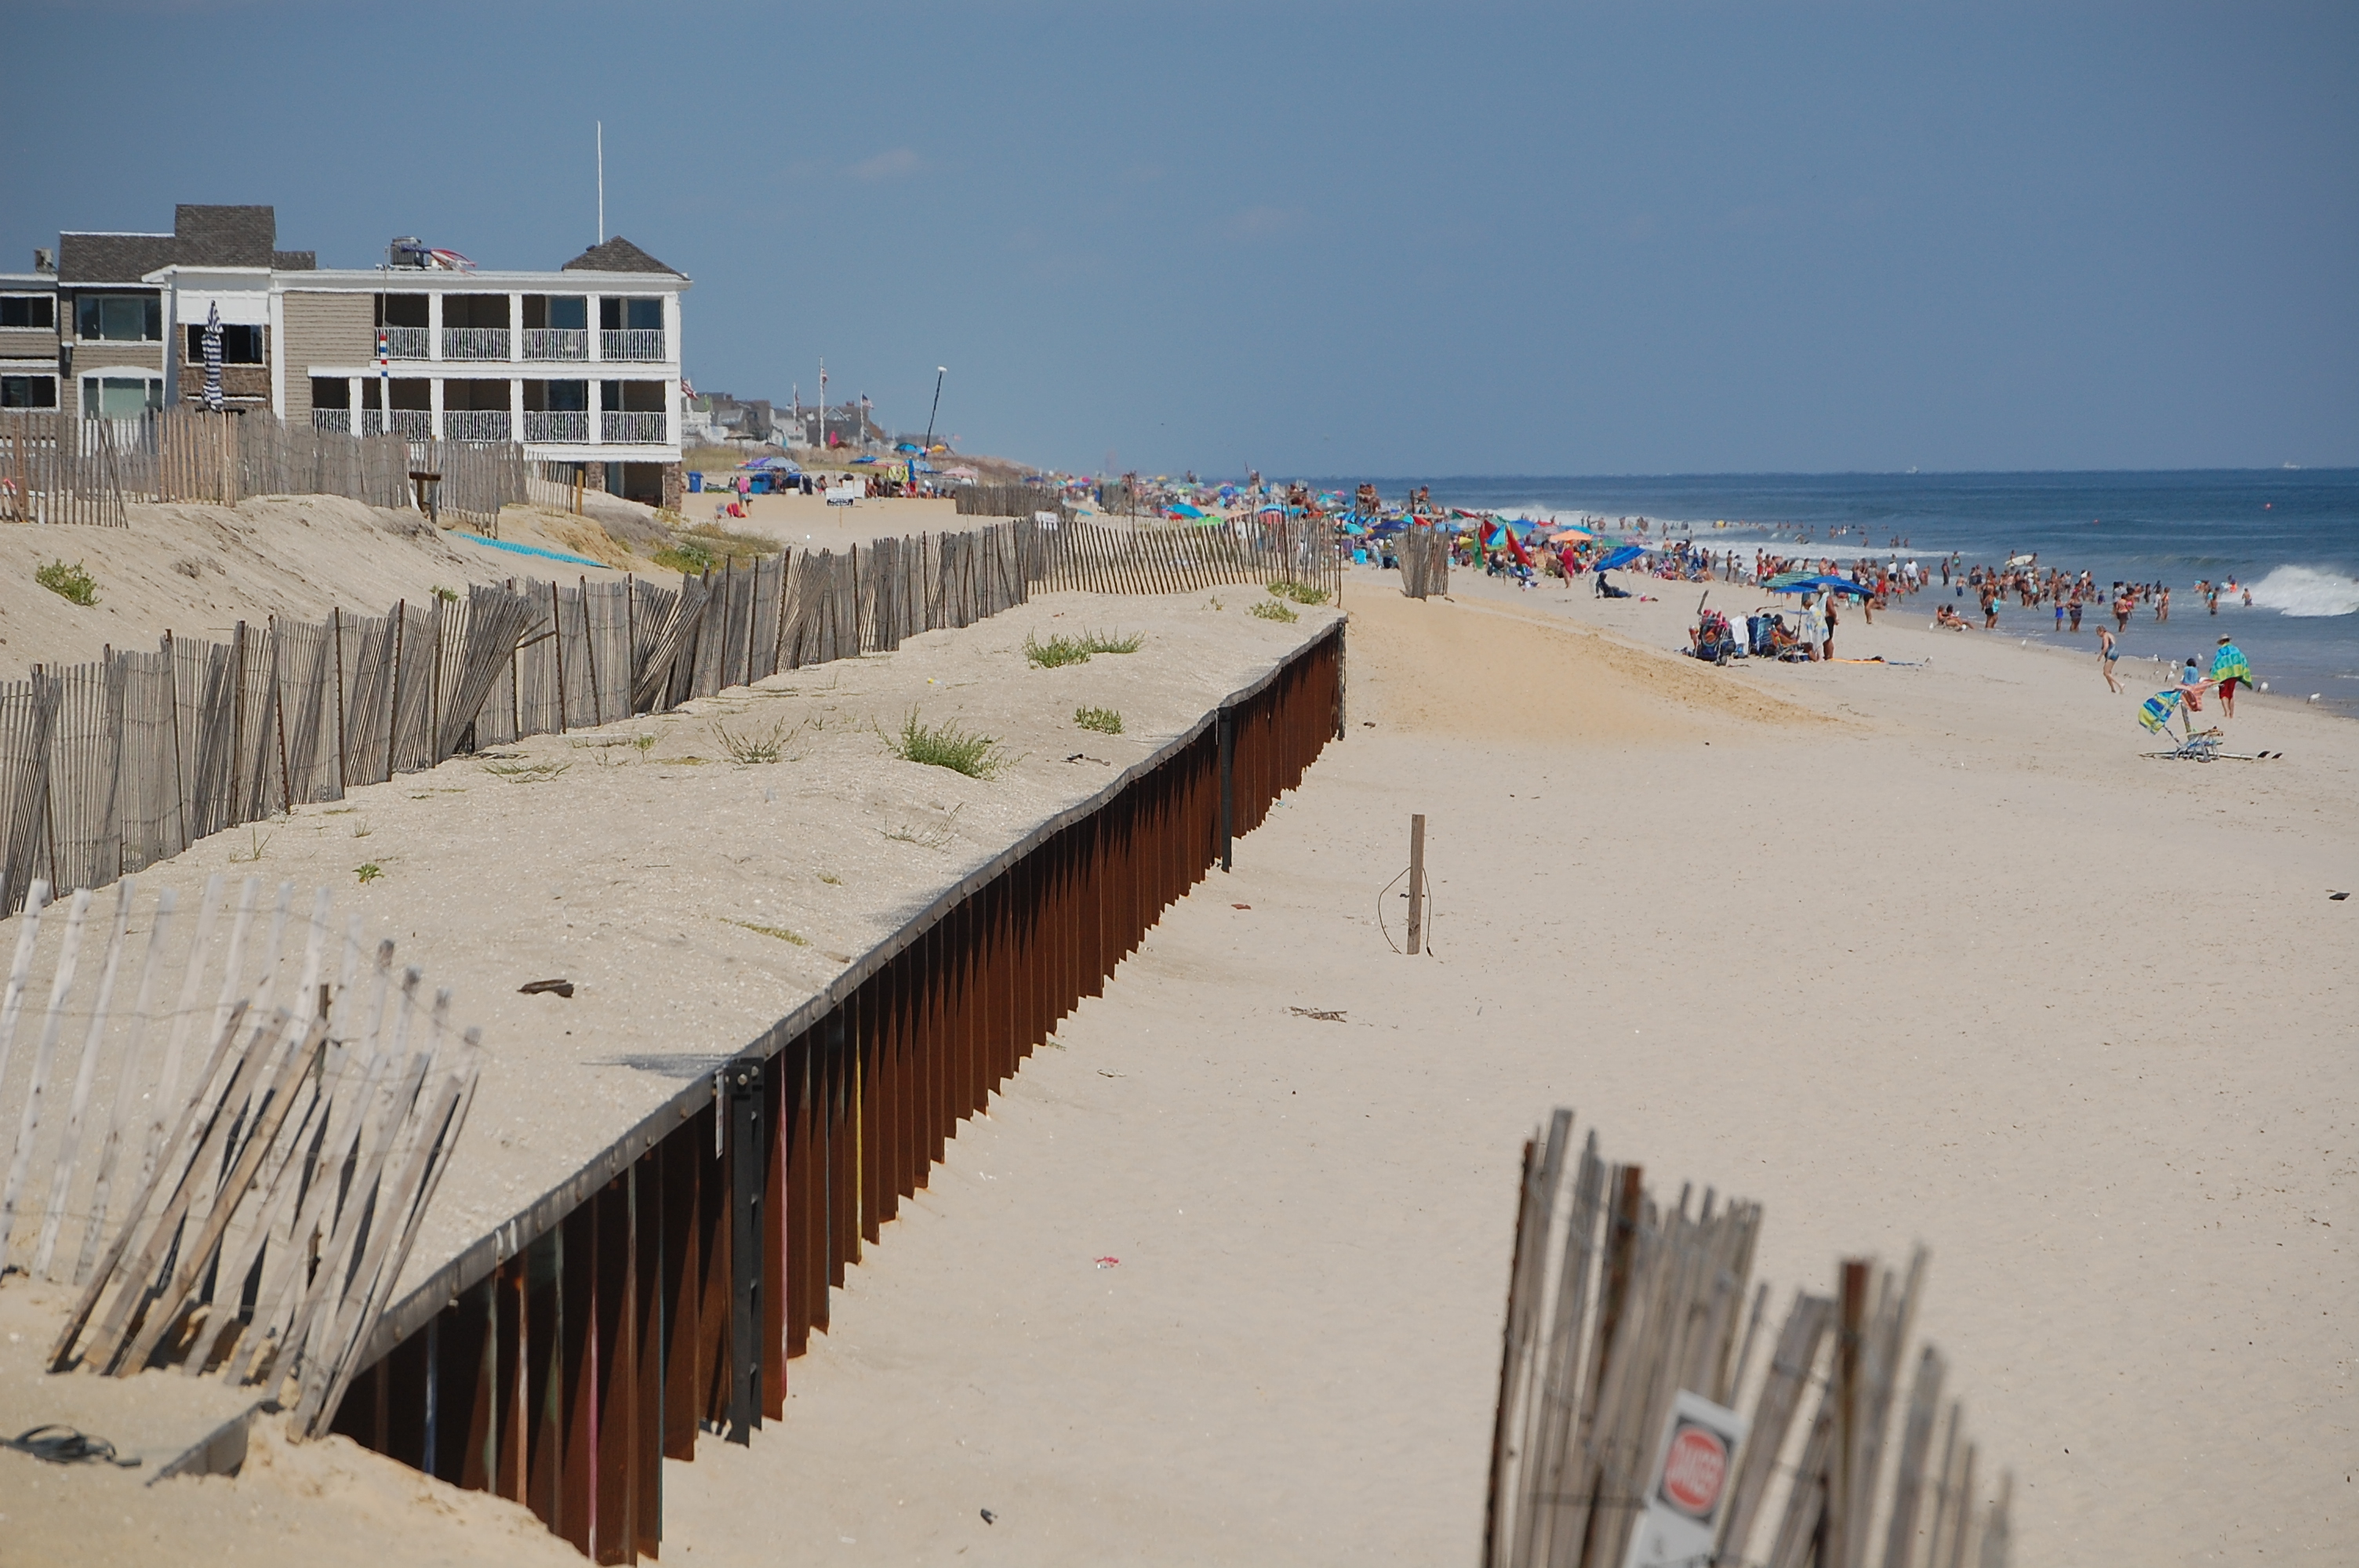 A sheet pile wall exposed where engineered dunes are planned for the beach in Brick, N.J. (Photo: Daniel Nee)